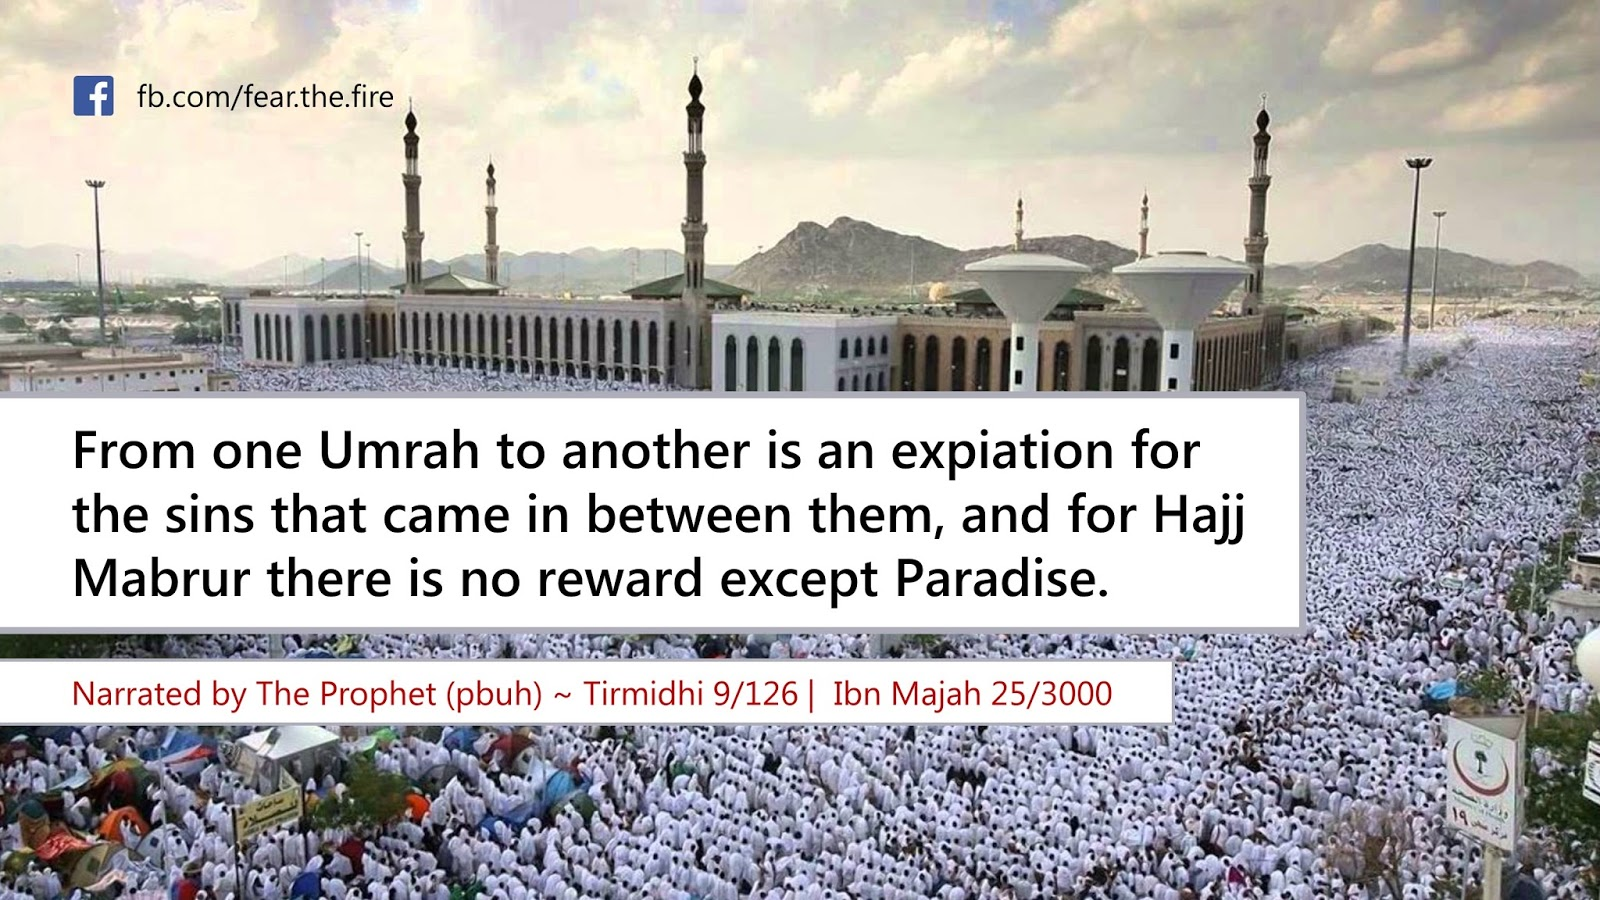 Side effects of Delaying Hajj, if one has the means - Inch